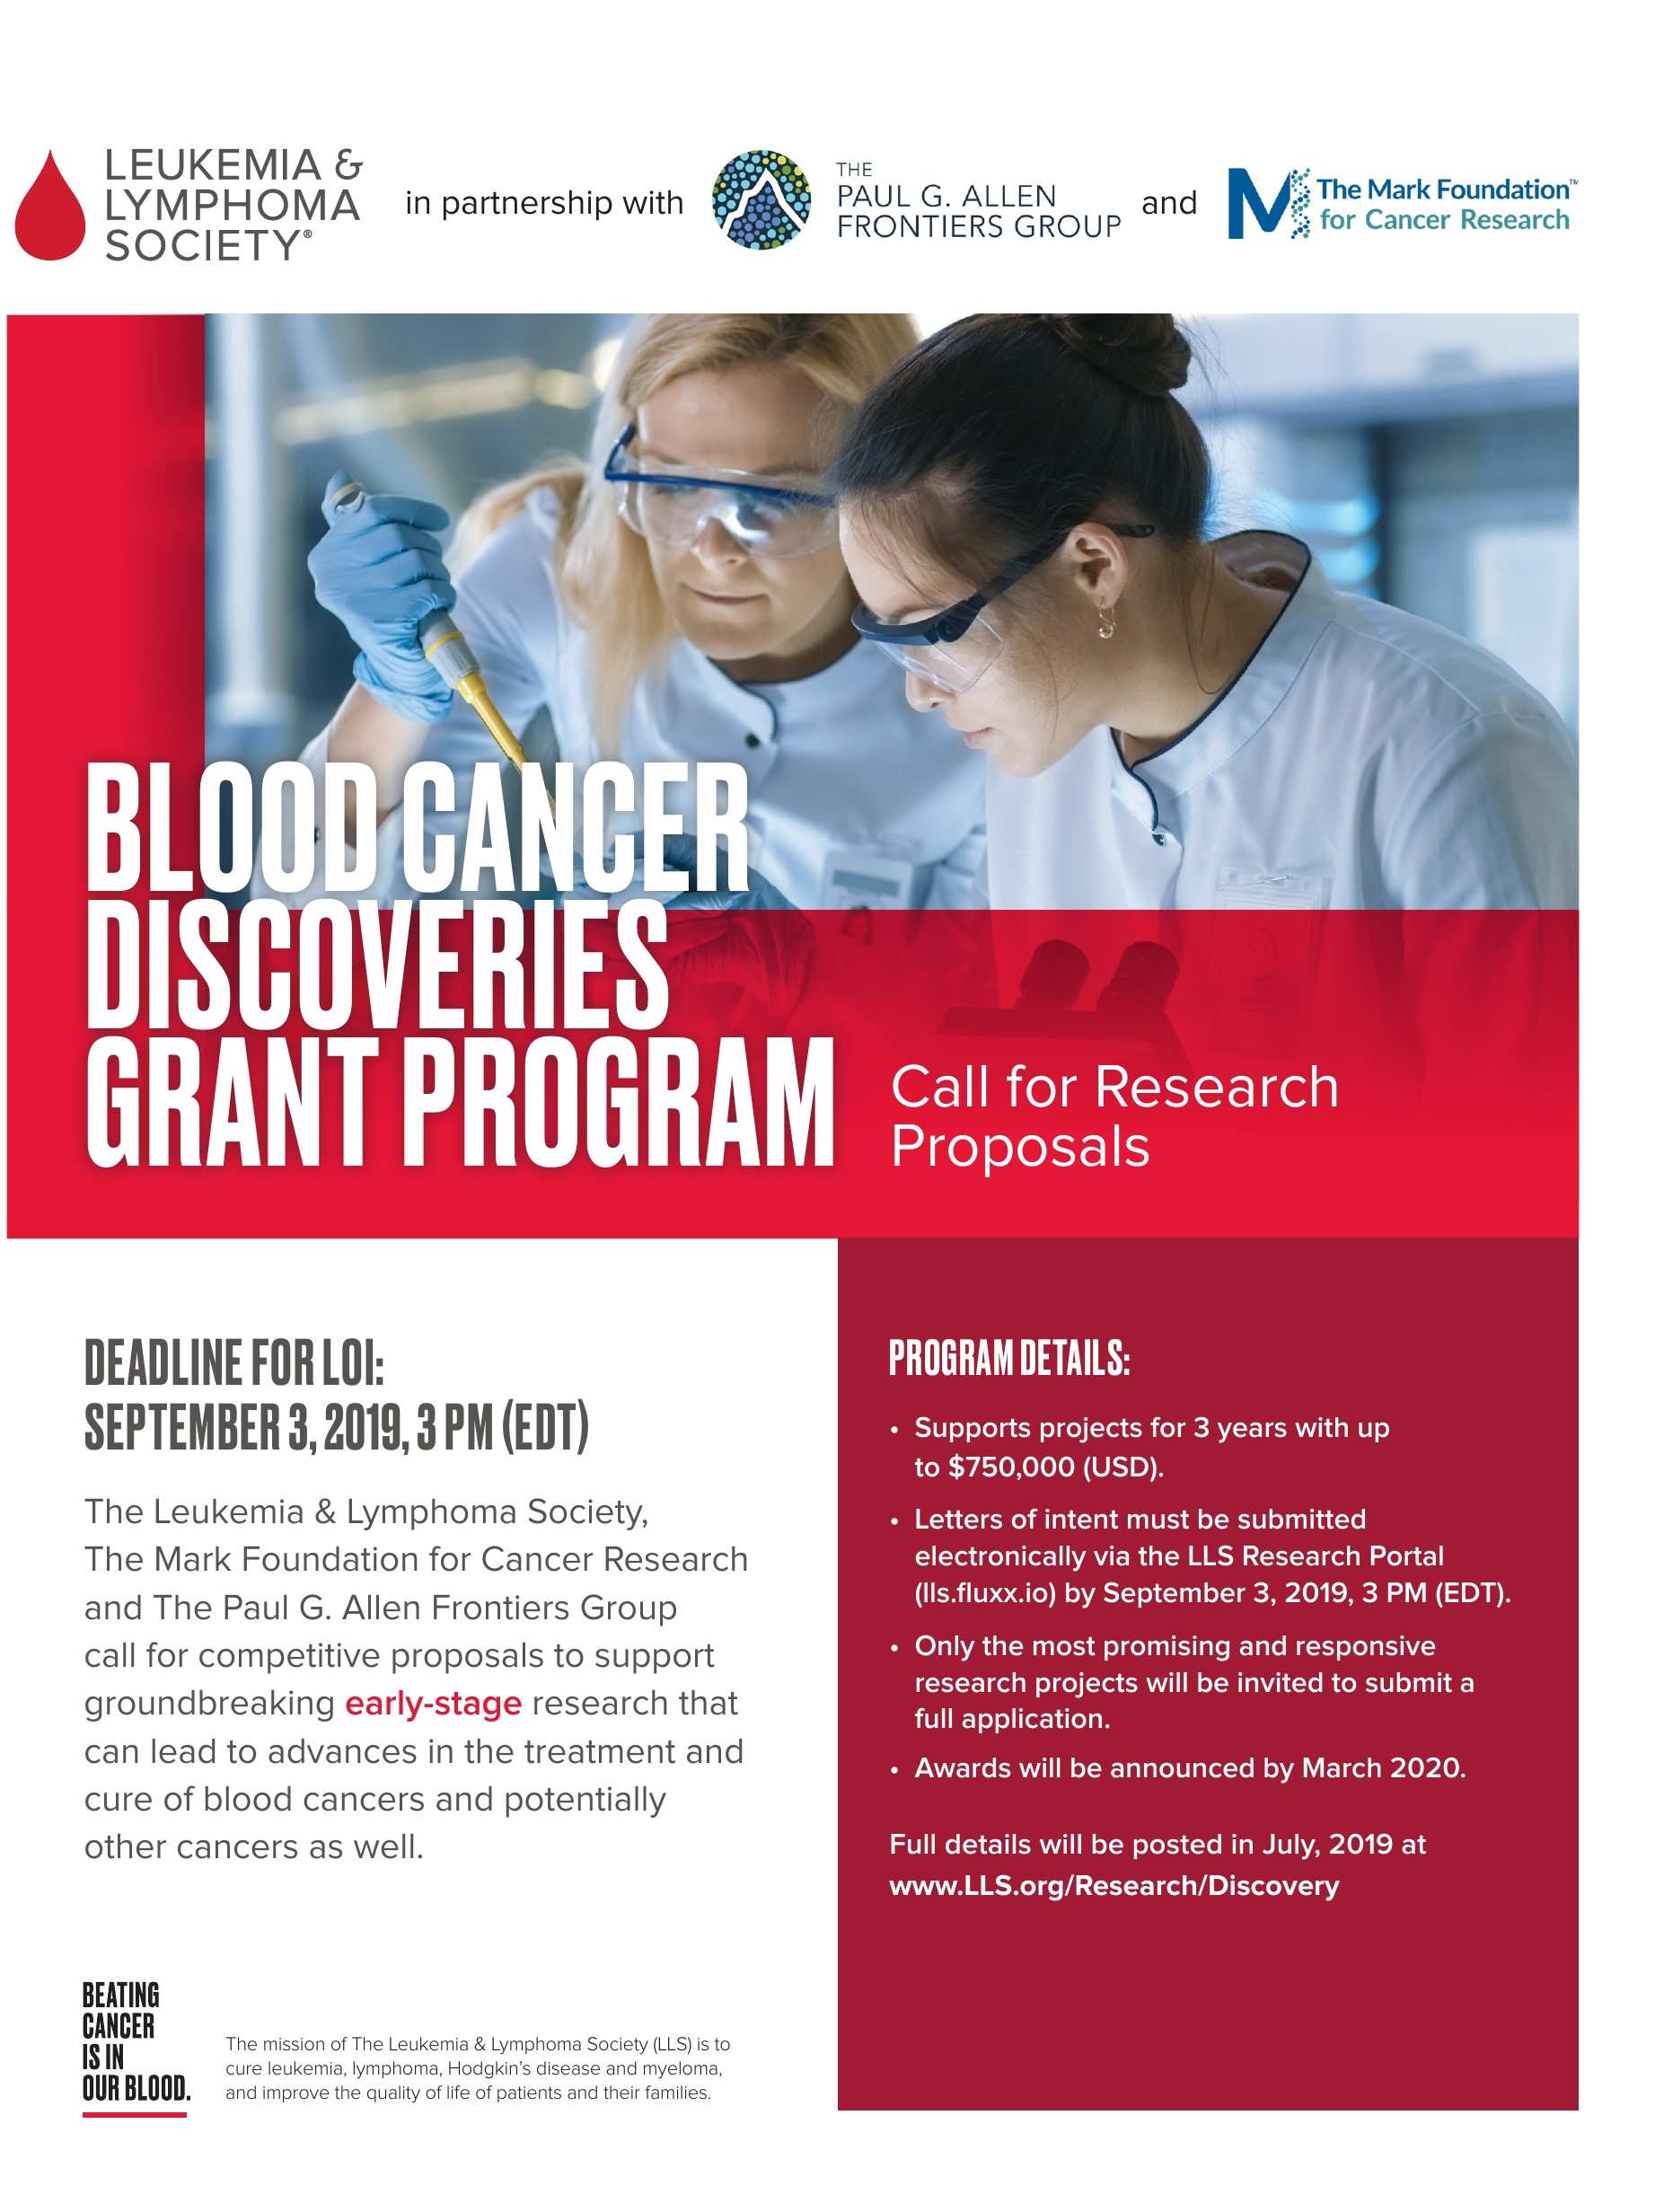 Blood Cancer Discoveries Grant Program (Now Accepting Applications